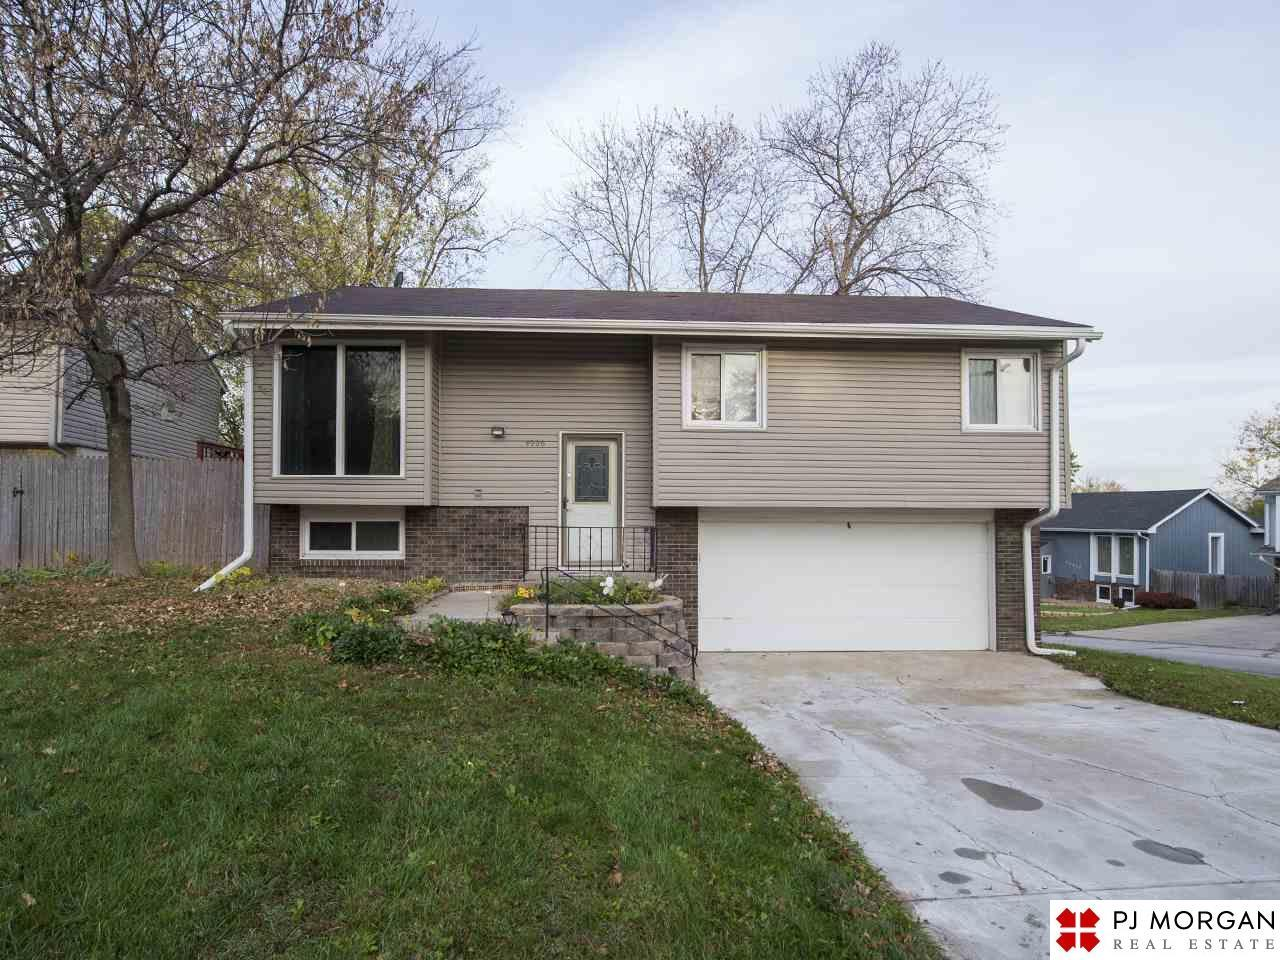 4906 s 145th cir omaha ne 68137 recently sold trulia